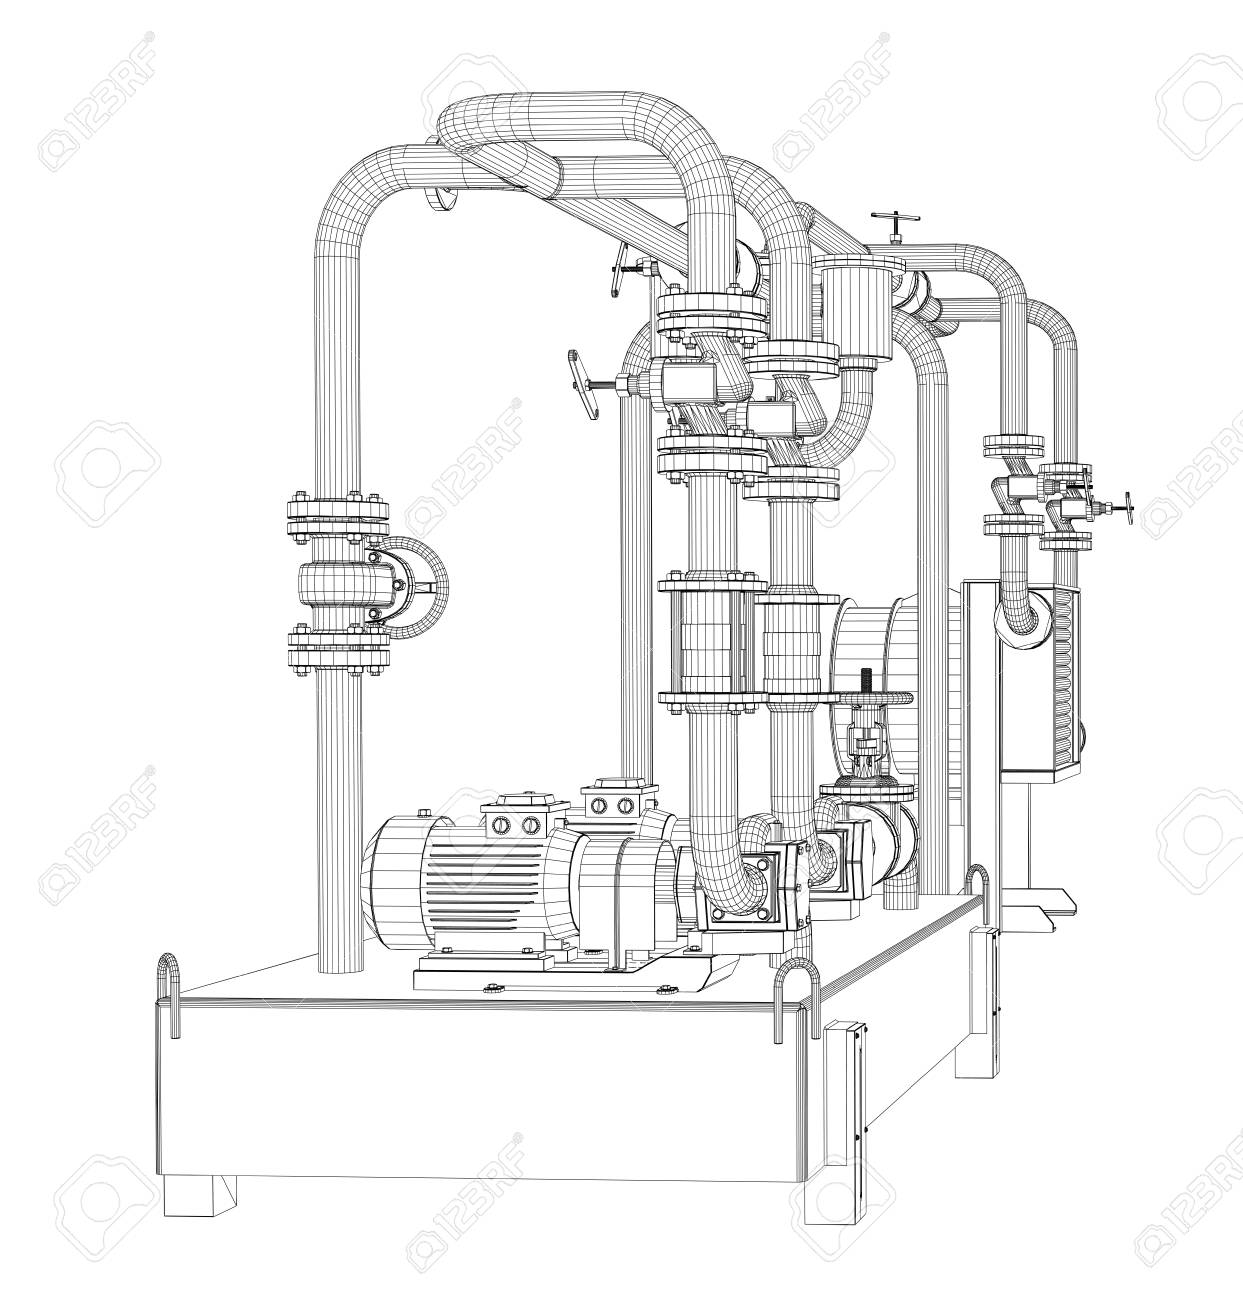 hight resolution of stock photo wire frame industrial equipment of oil pump